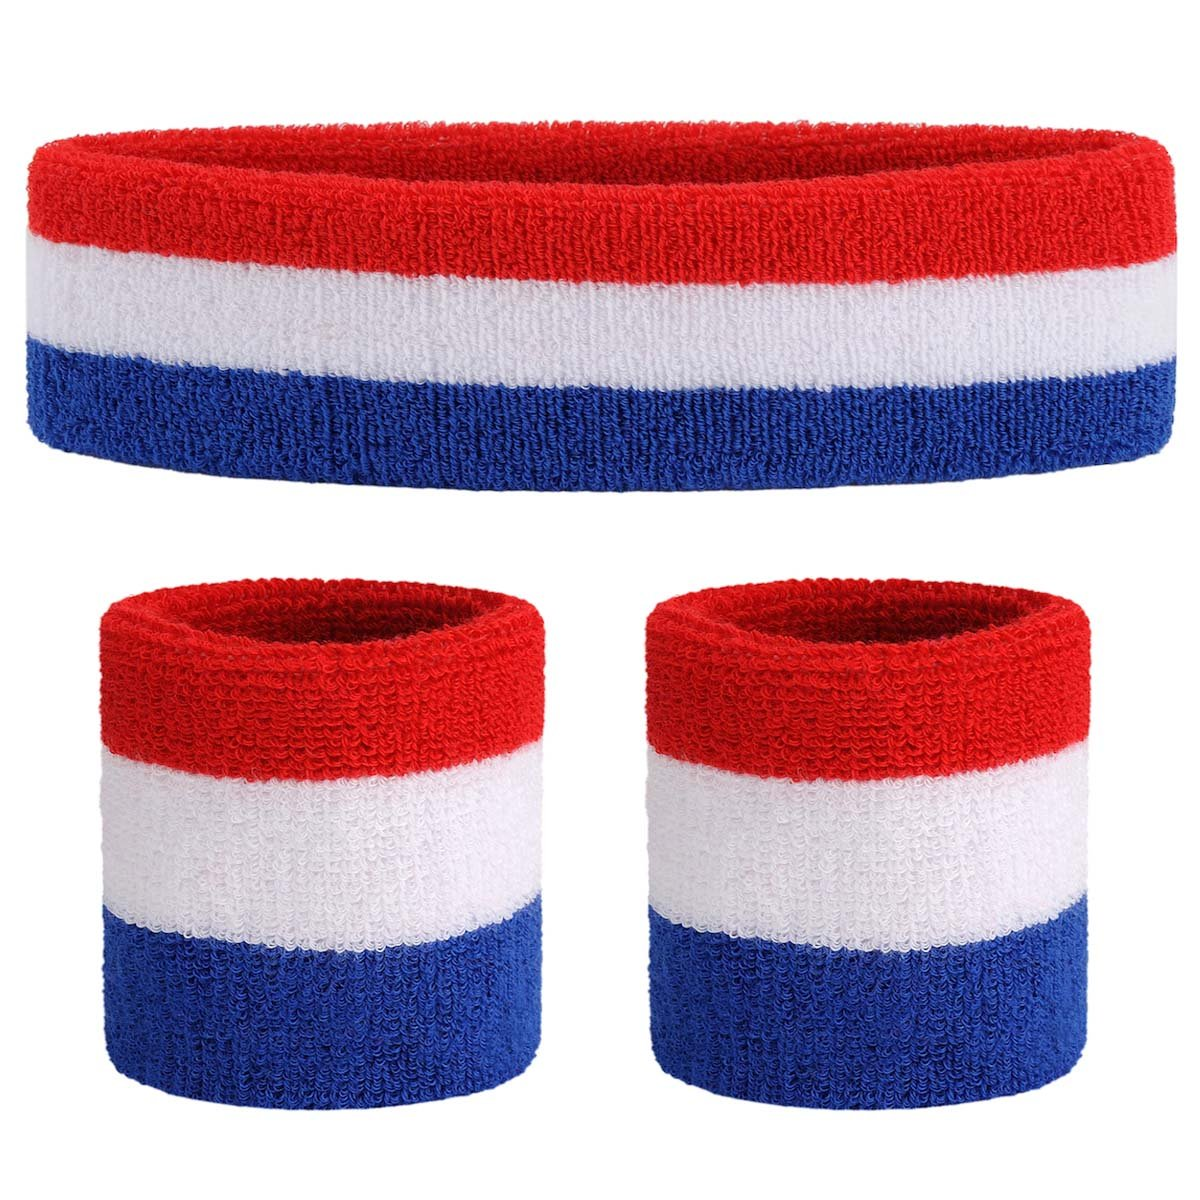 80s Hats, Caps, Visors, Buckets | Women and Men OnUpgo Sweatband Set Sports Headband Wristband Set Sweatbands Terry Cloth Wristband Wrist Sweatband Headbands Moisture Wicking Sweat Absorbing Head Band $9.99 AT vintagedancer.com